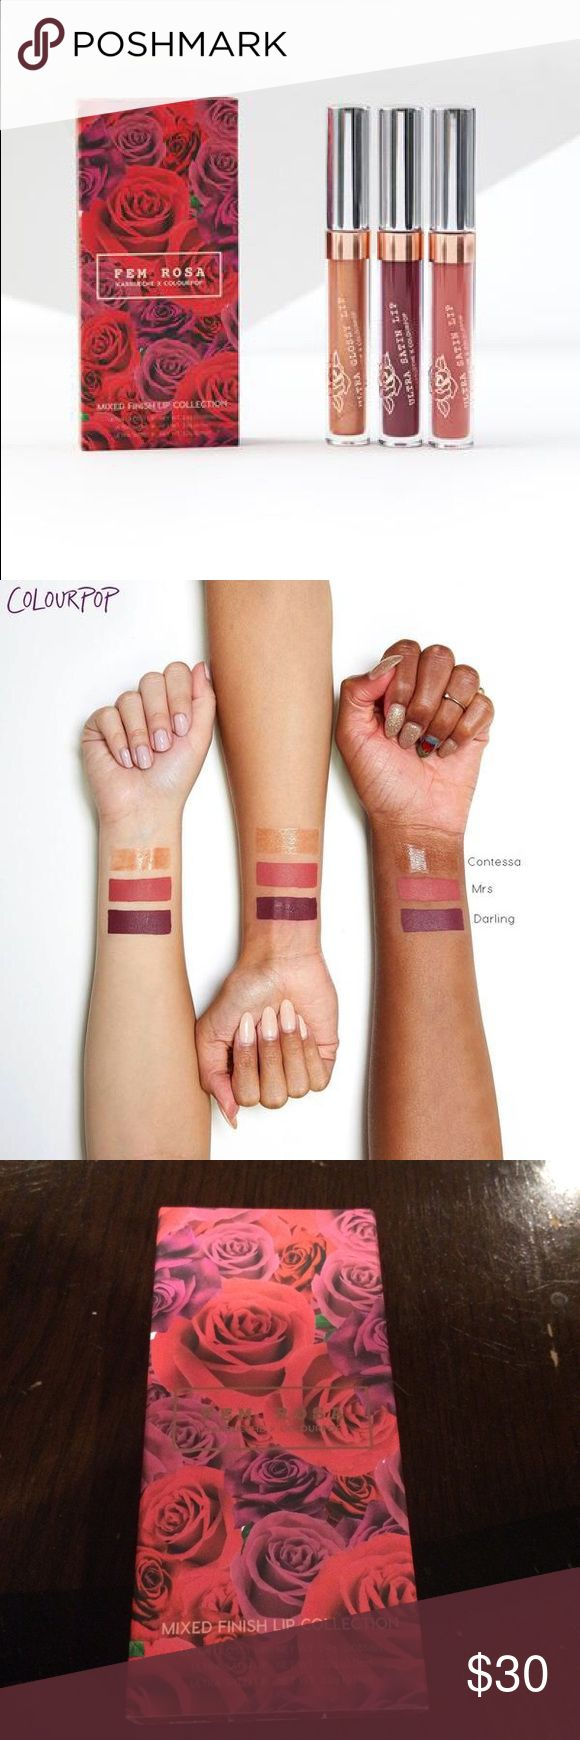 Colourpop x Karreuche Fem Rosa Lip Bundle makeup Lip bundle. All new and unopened. Comes individually boxed and then kept together In a sleeve. Info from site: Dainty to daring, this bundle includes 1 Ultra Glossy Lip and 2 Ultra Satin Lips to complement your feminine side.  Contessa: Ultra Glossy Lip; Warm gold sprinkled with pink and gold glitter in a Sheer finish Mrs.: Ultra Satin Lip; Deepened coral Darling: Ultra Satin Lip; Deep plum Colourpop Makeup Lipstick